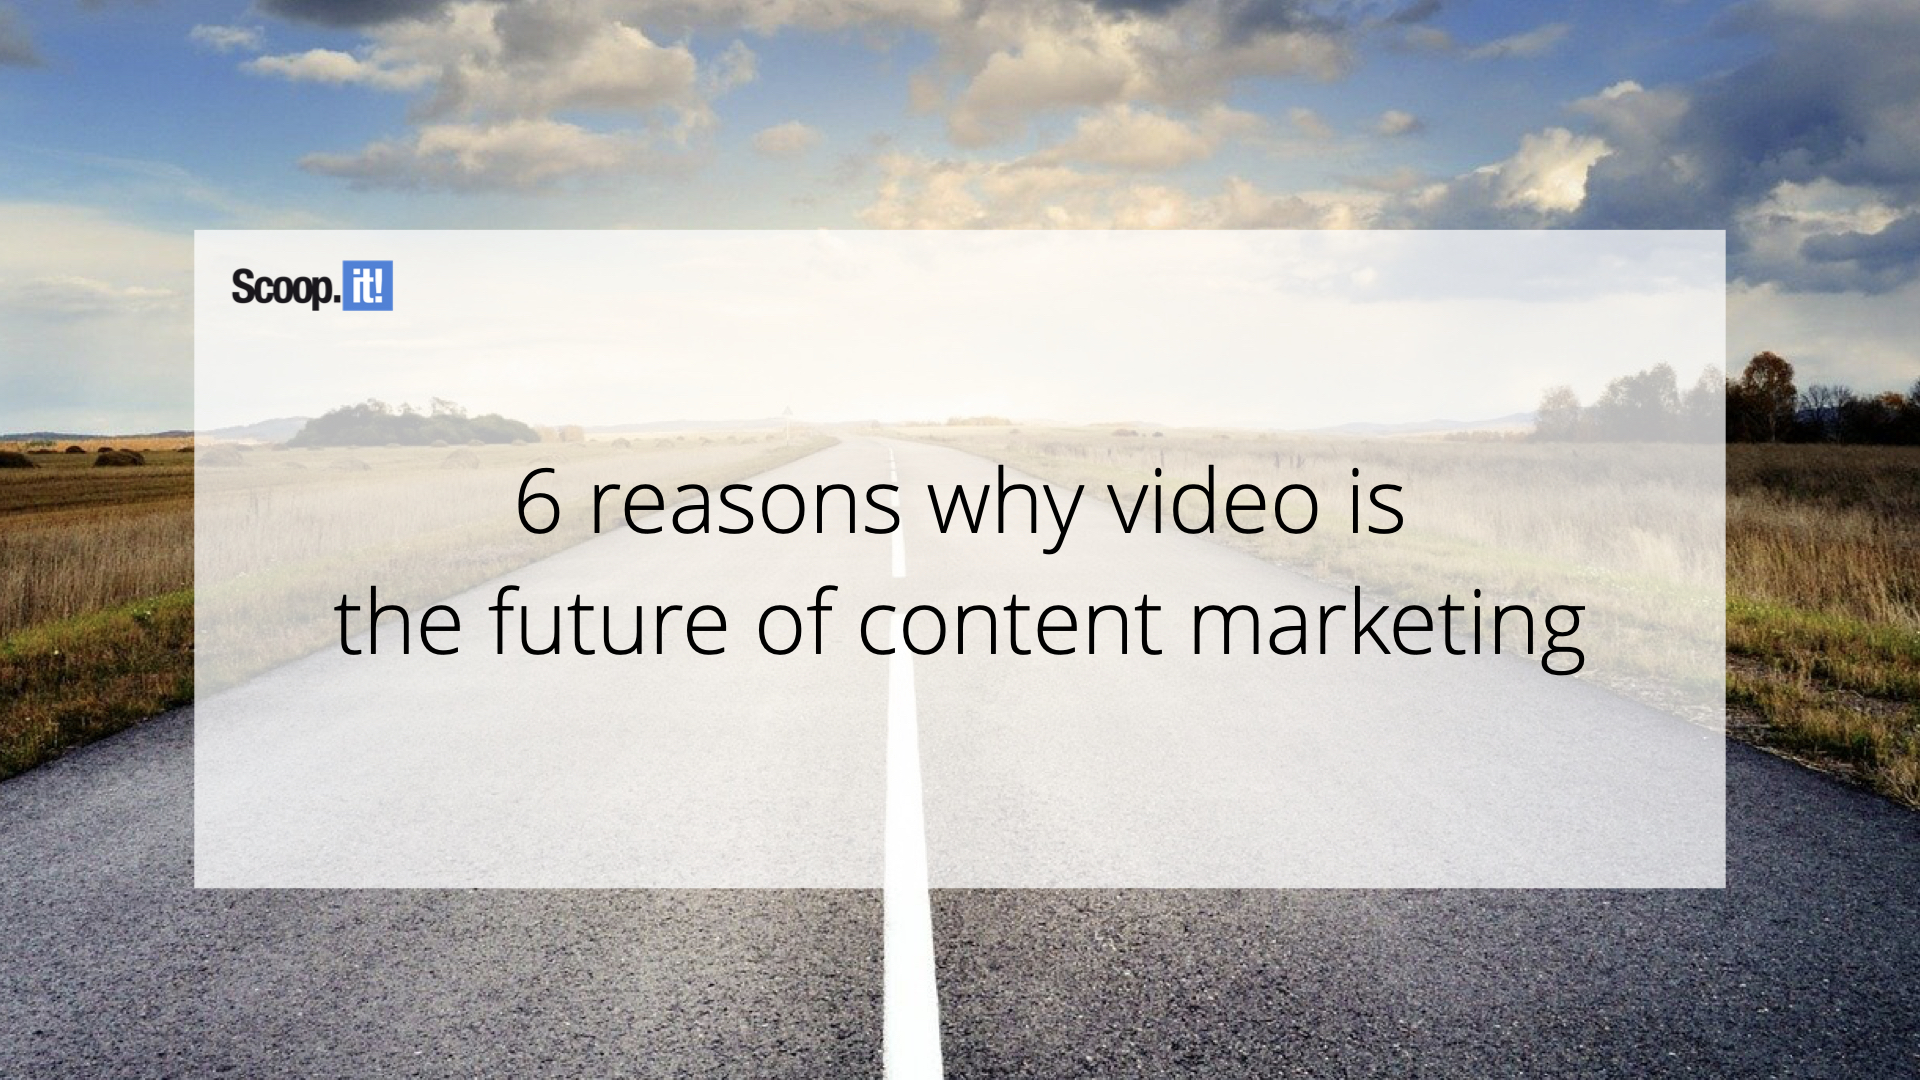 6 Reasons Why Video Is The Future of Content Marketing